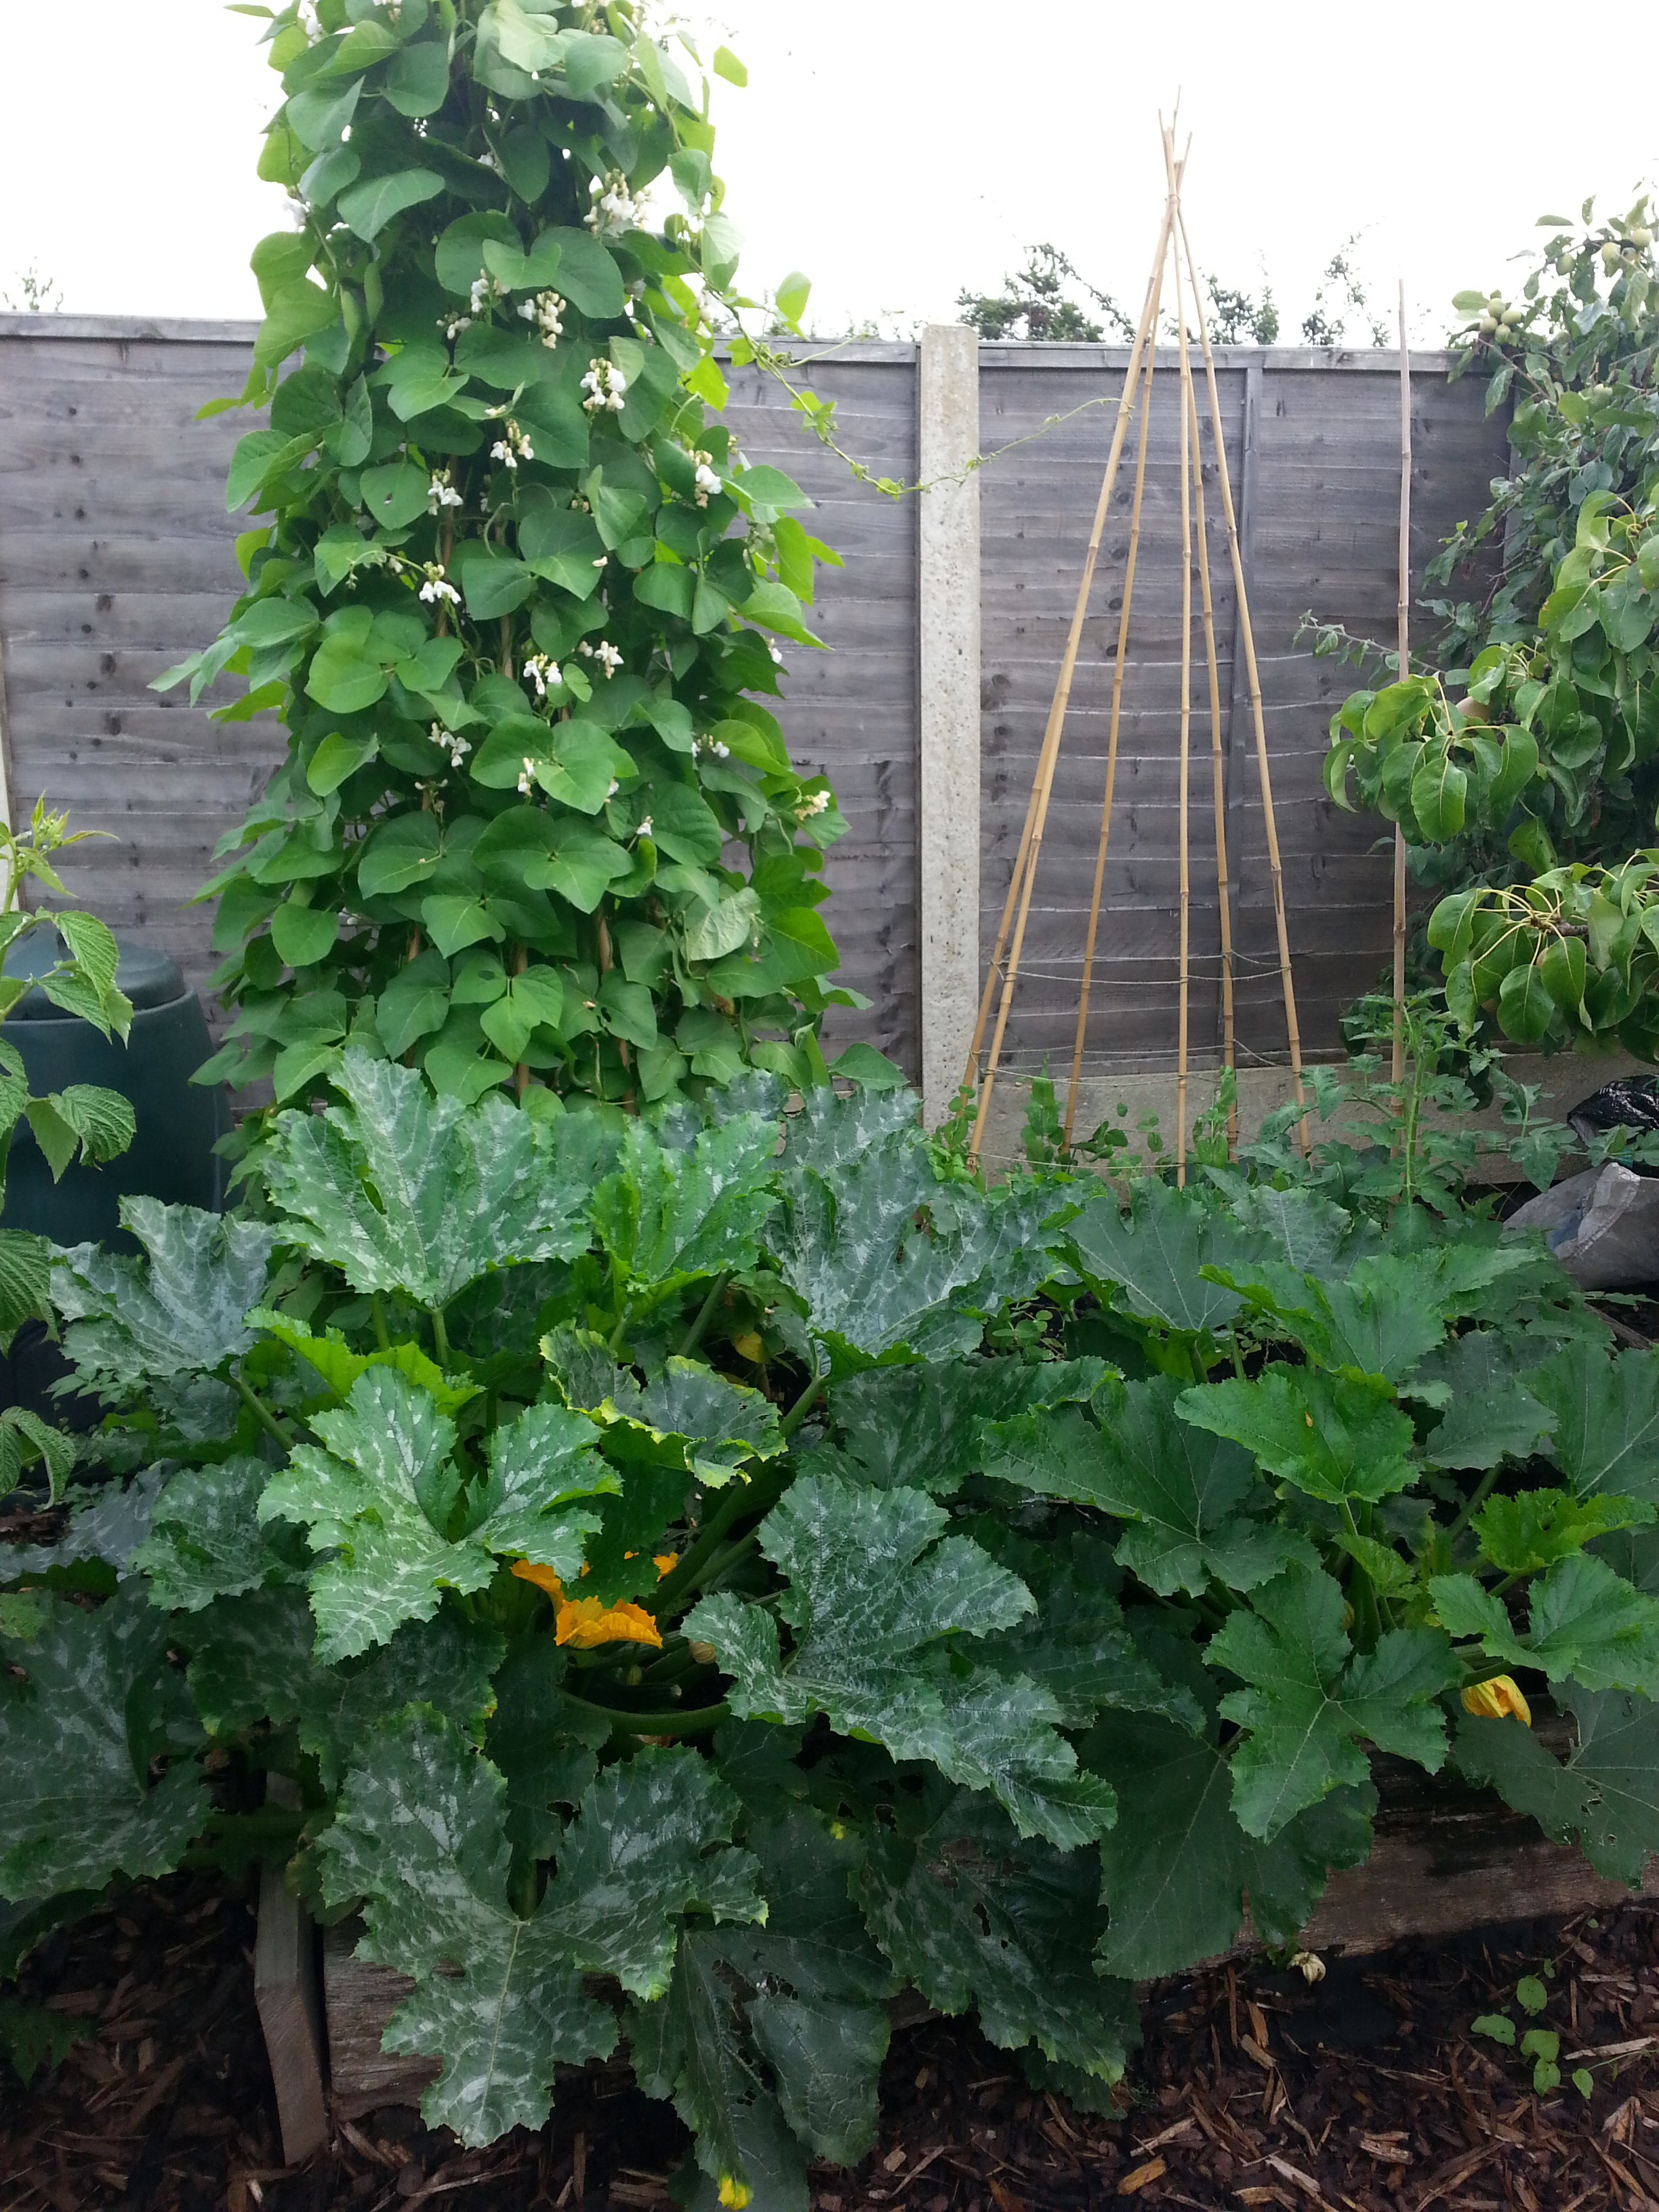 6 things i ve learnt from growing vegetables in a small space real men sow - Growing vegetables in a small space concept ...